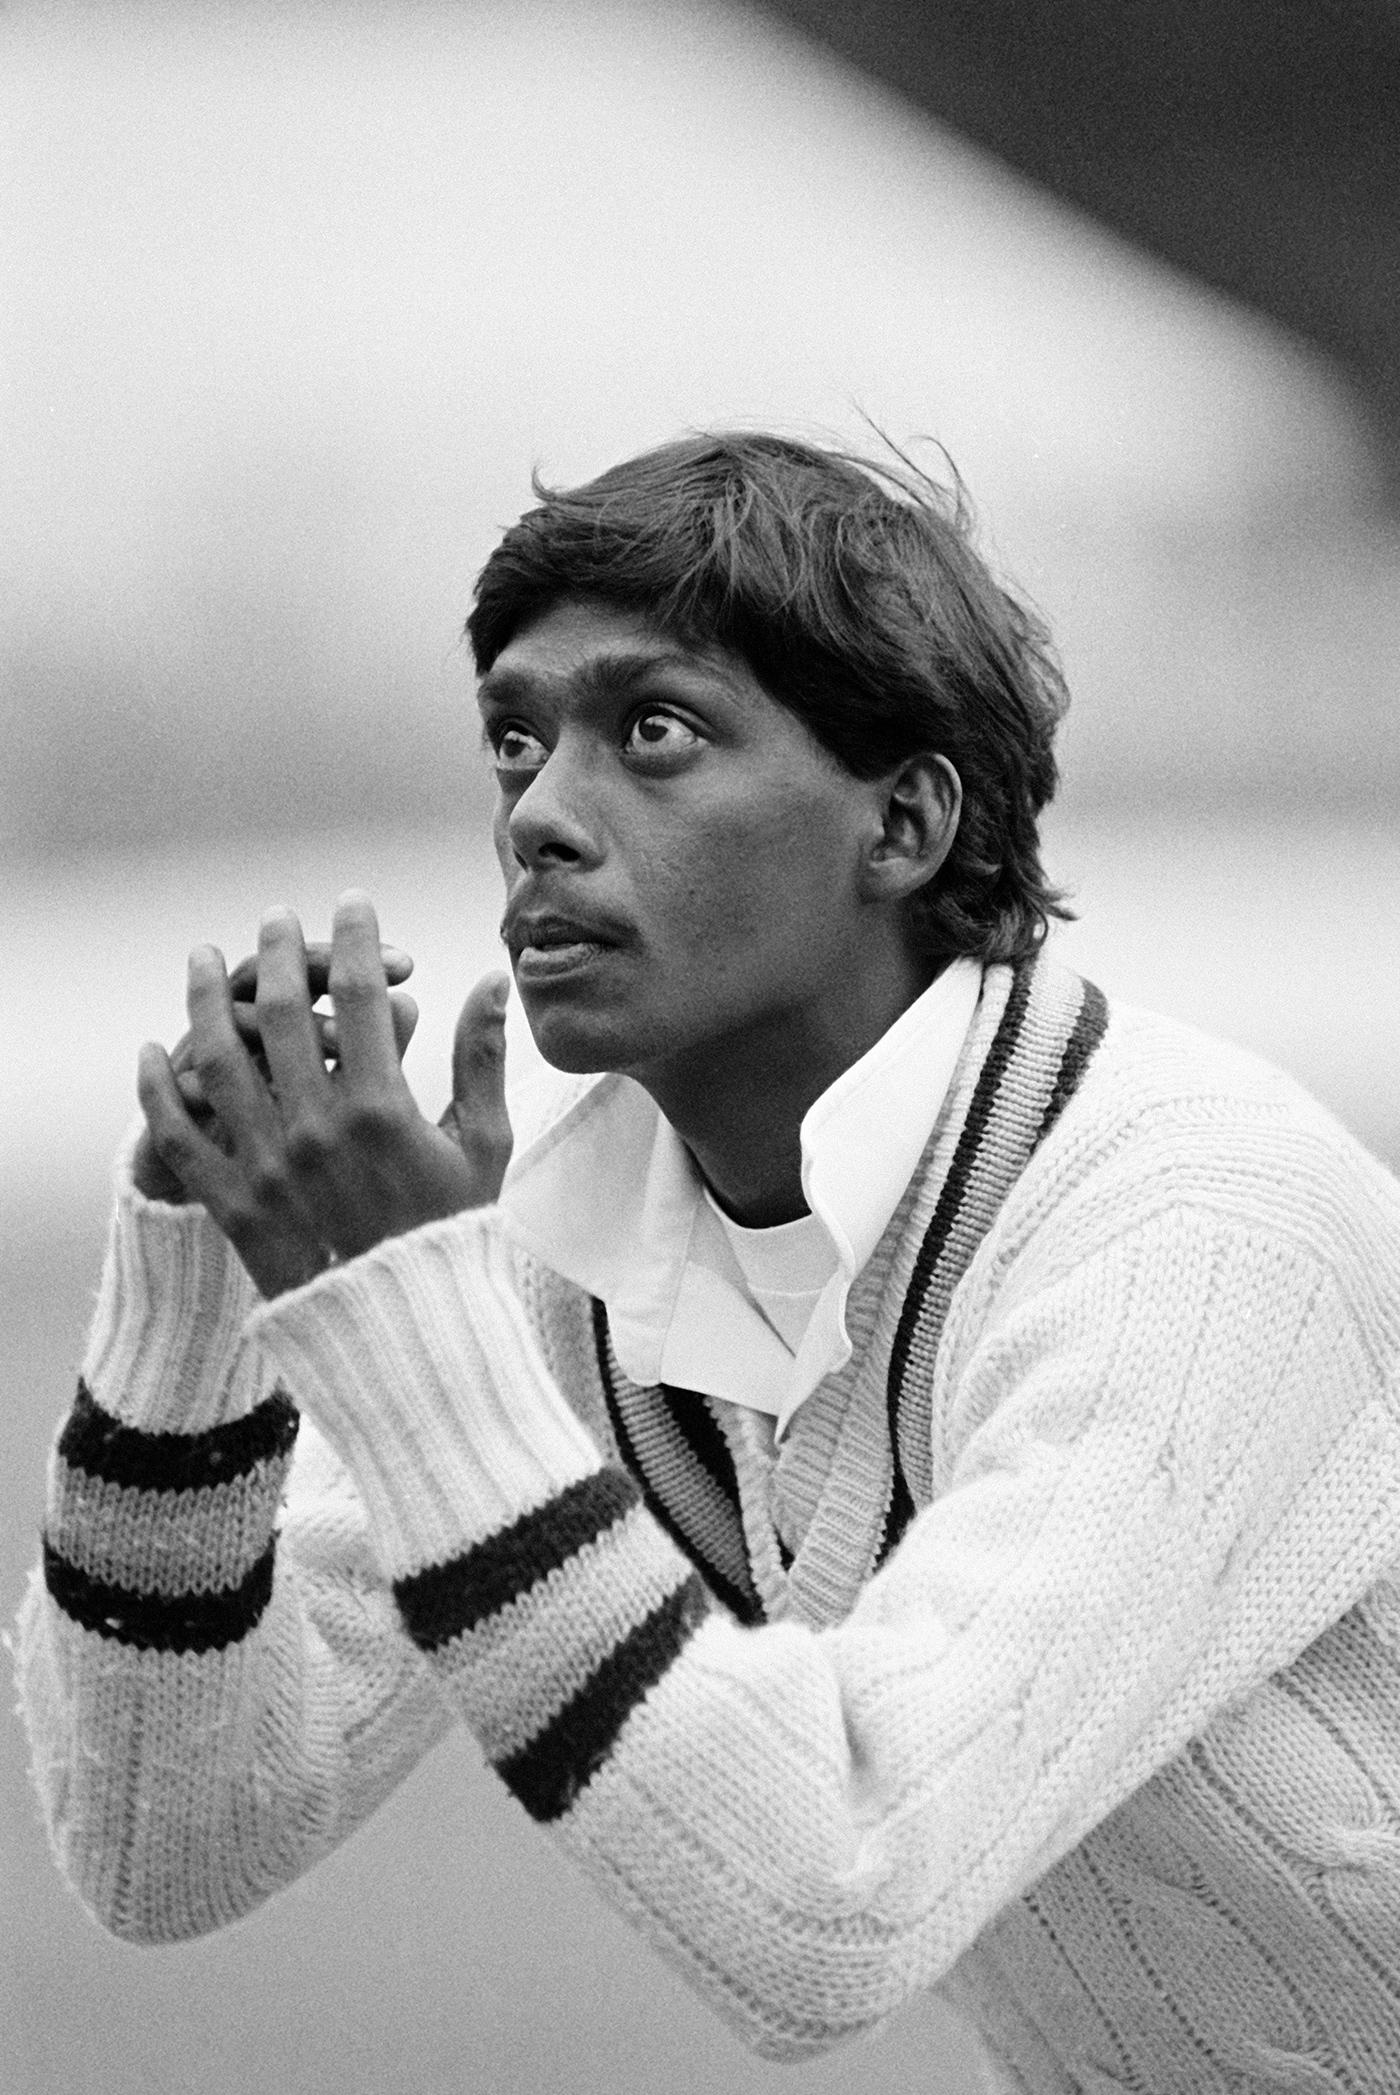 Sivaramakrishnan turned out for the Lavinia Duchess of Norfolk XI against the Australians in Arundel during the 1985 Ashes